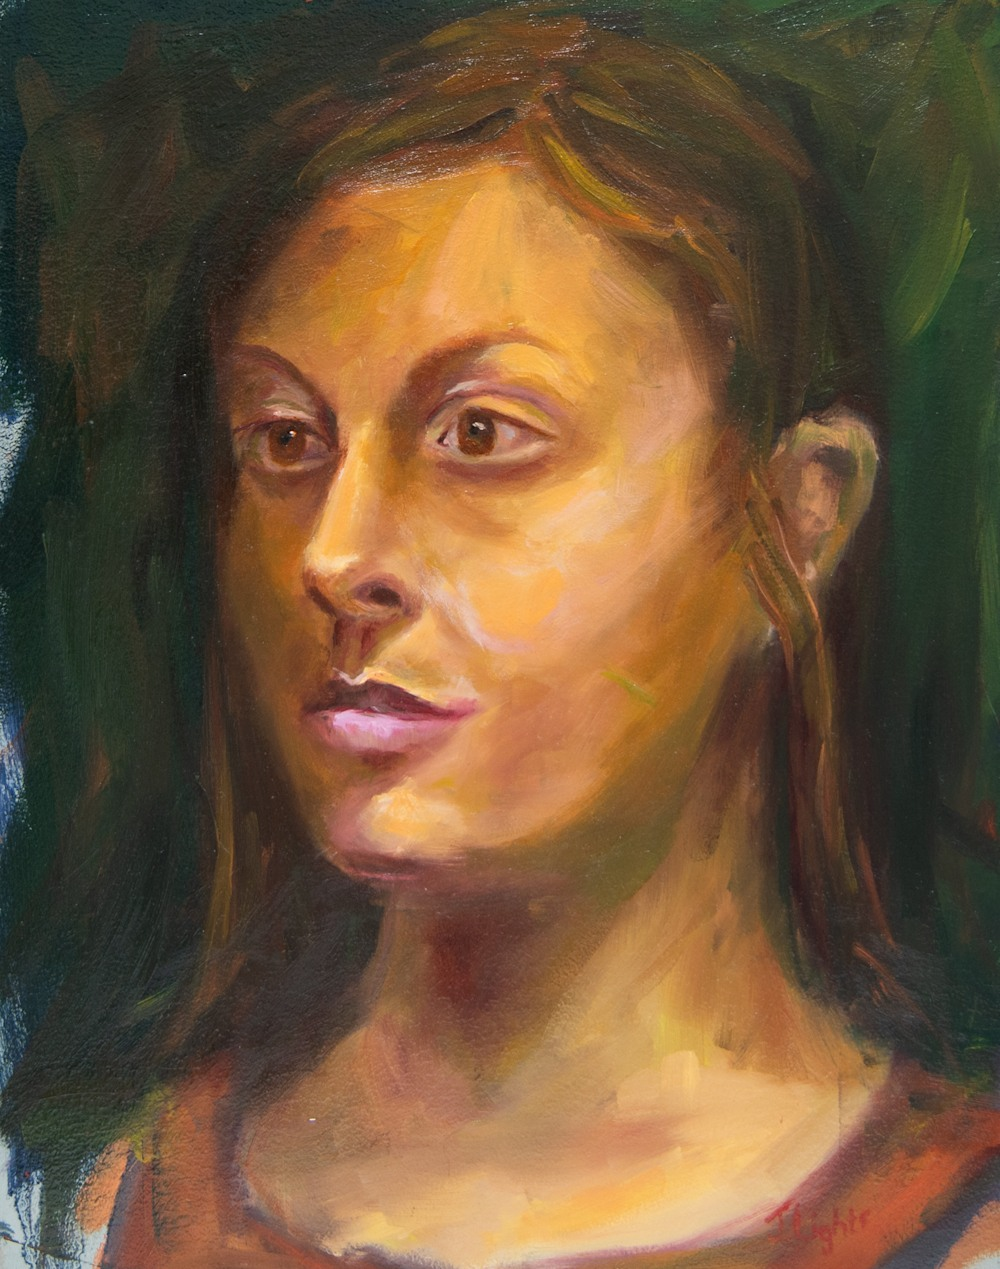 Portrait oil painting with warm colors by Jamie Lightfoot.